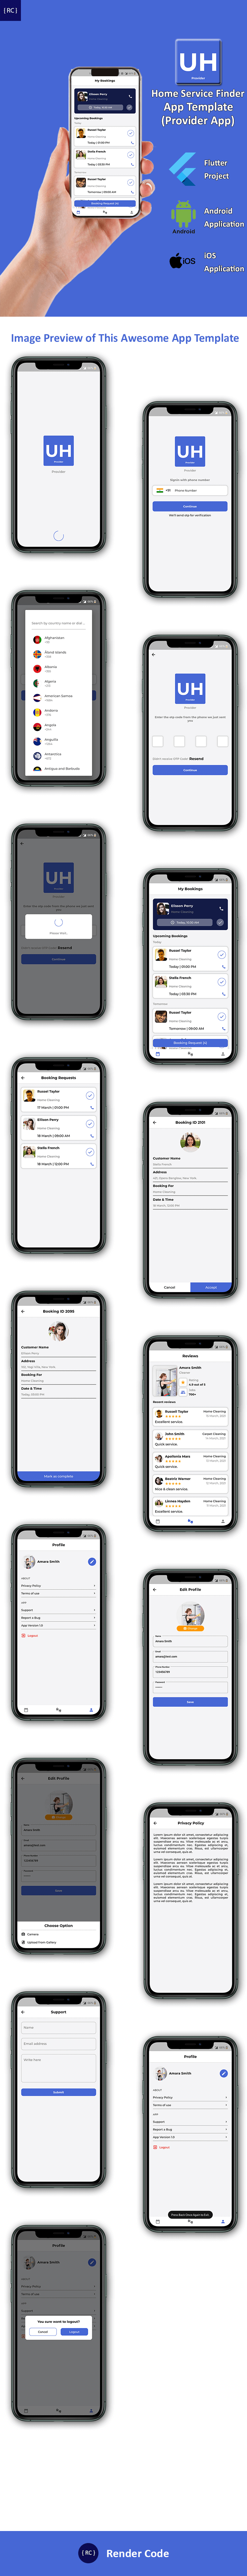 Home Service Finder | Provider | Booking Android + iOS App Template | 2 Apps | UrbanHome - 5